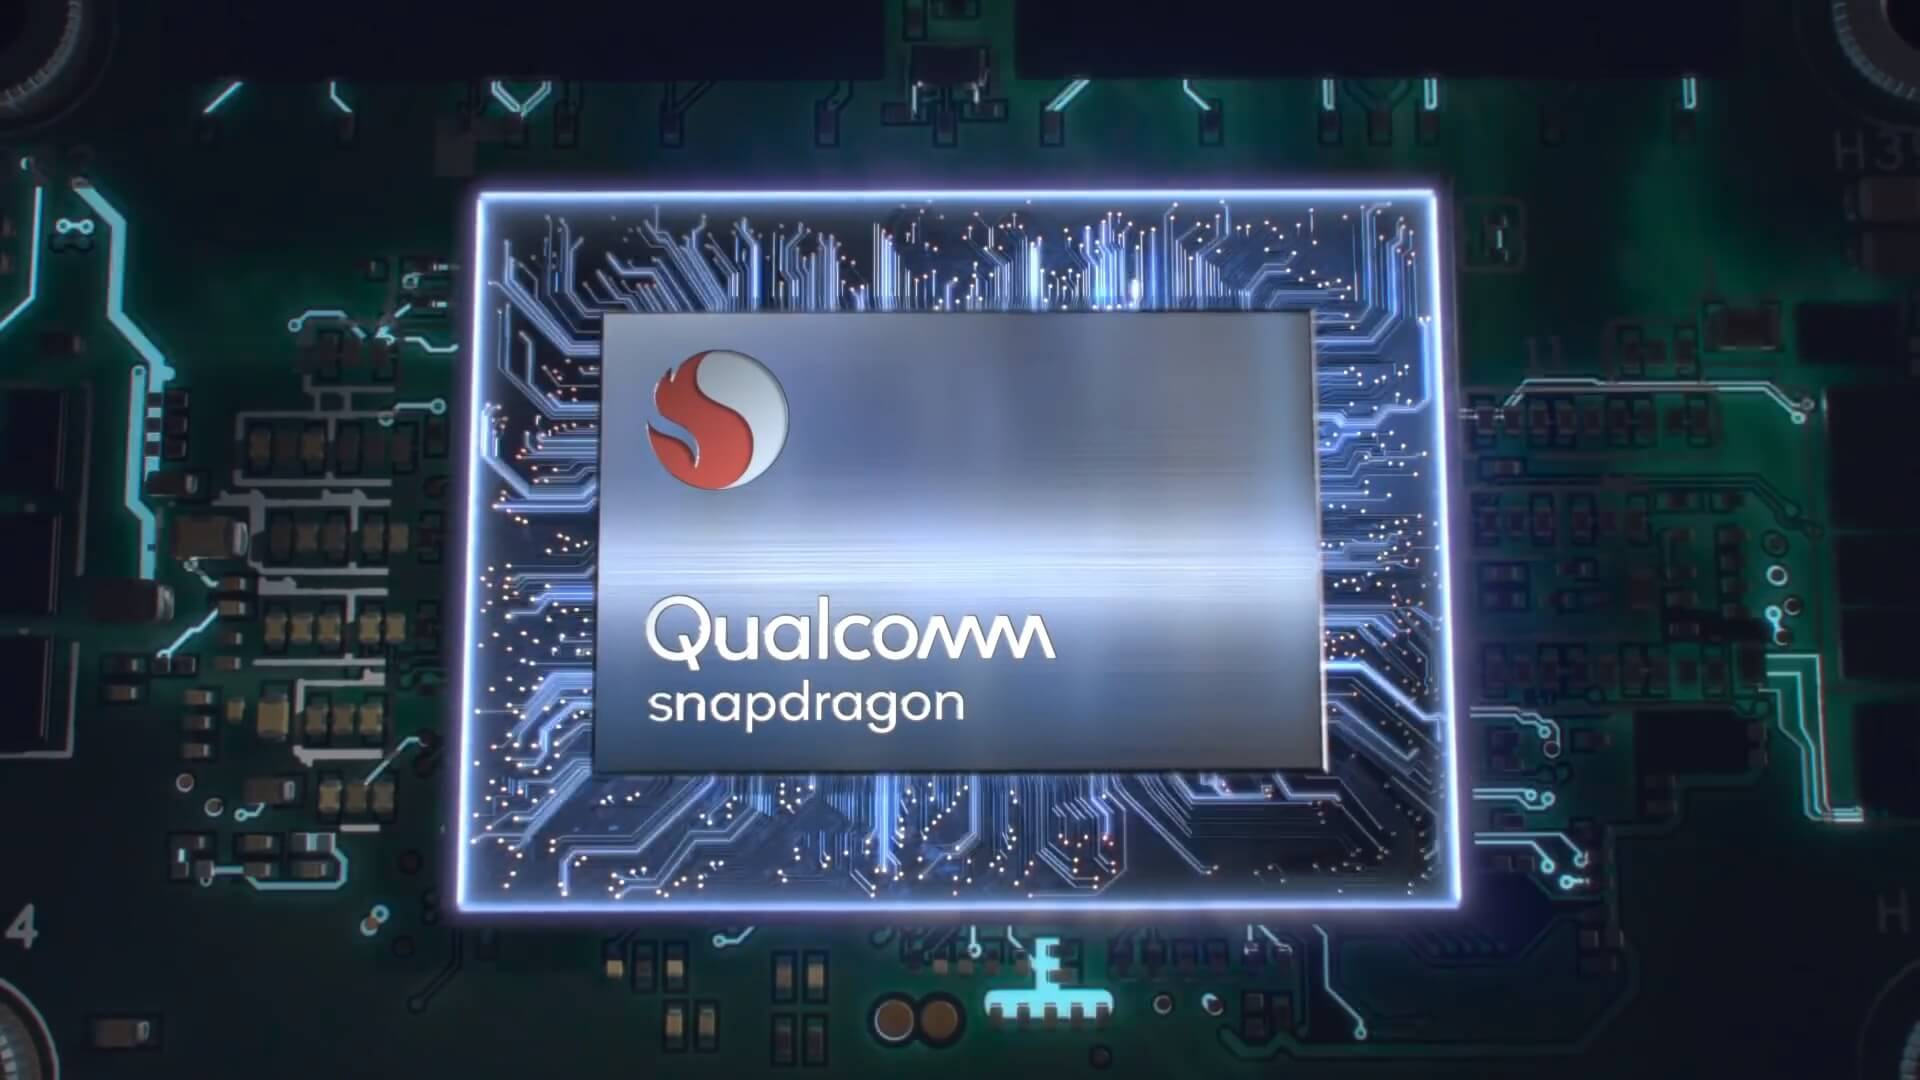 Meet the Snapdragon 8cx: Qualcomm's most powerful SoC